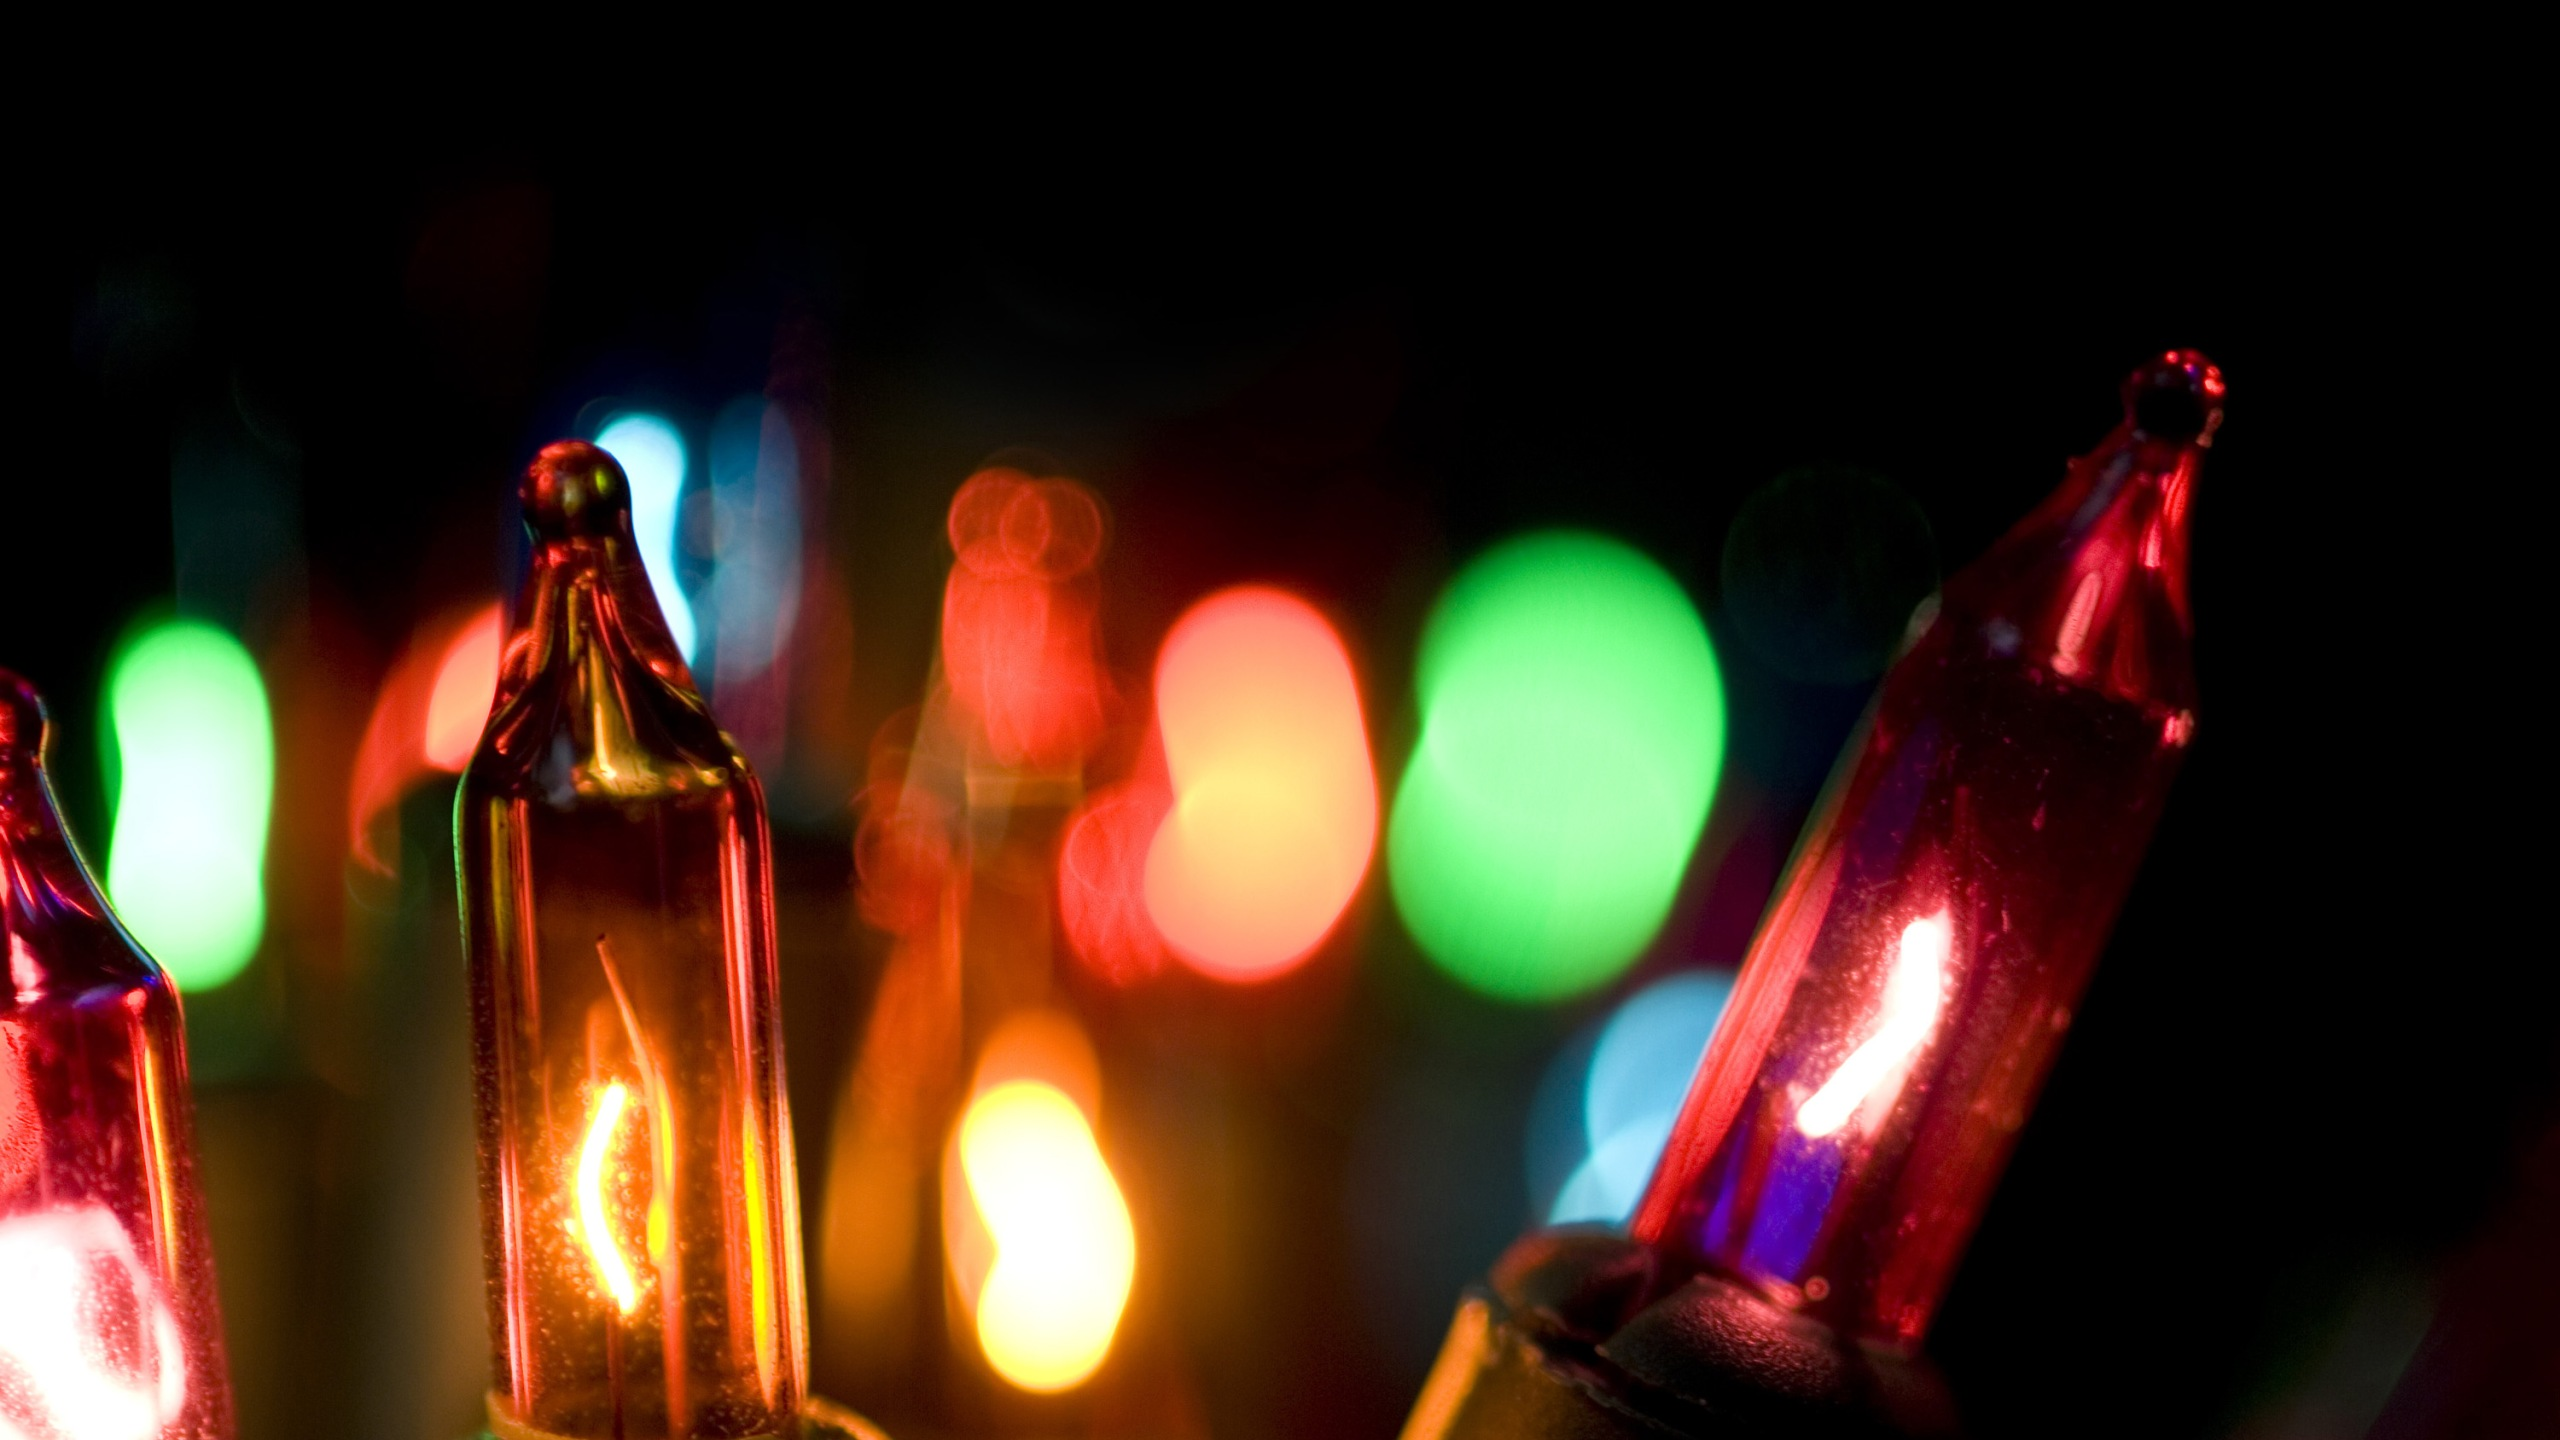 colorful festive lights_131856